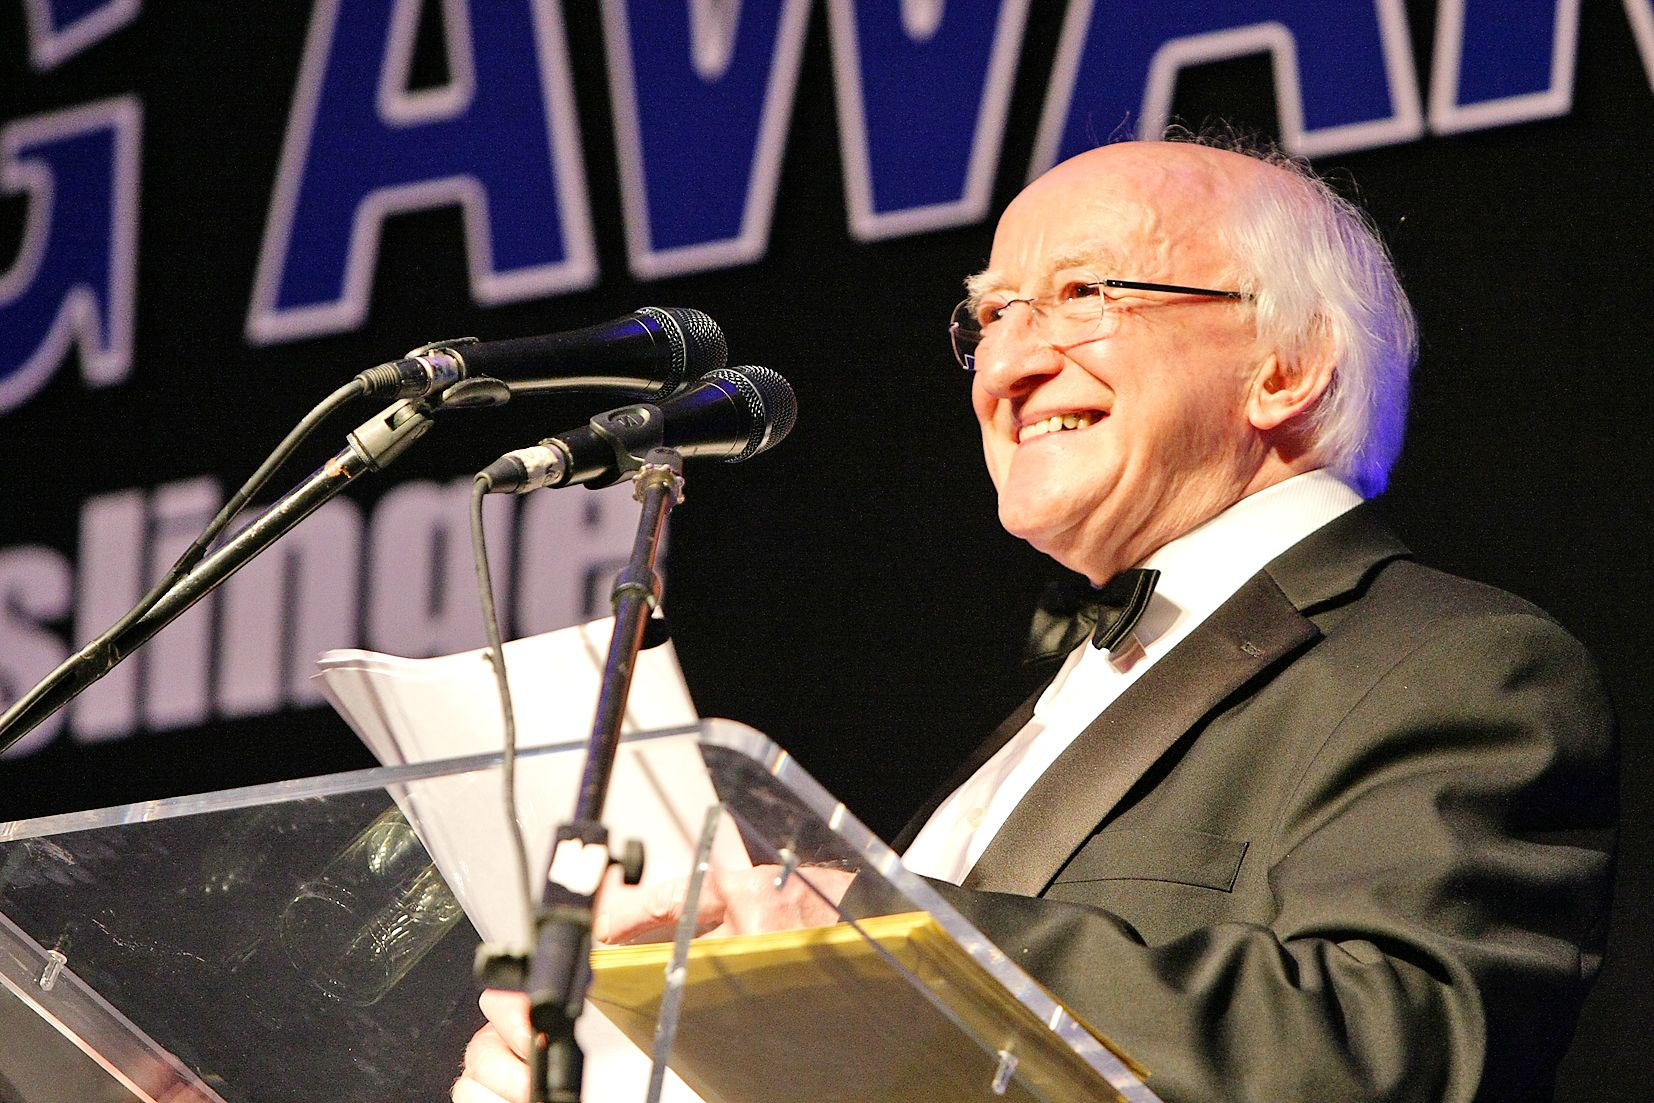 FURIOUS FURORE: Unionists were angered when President Higgins turned down that invitation